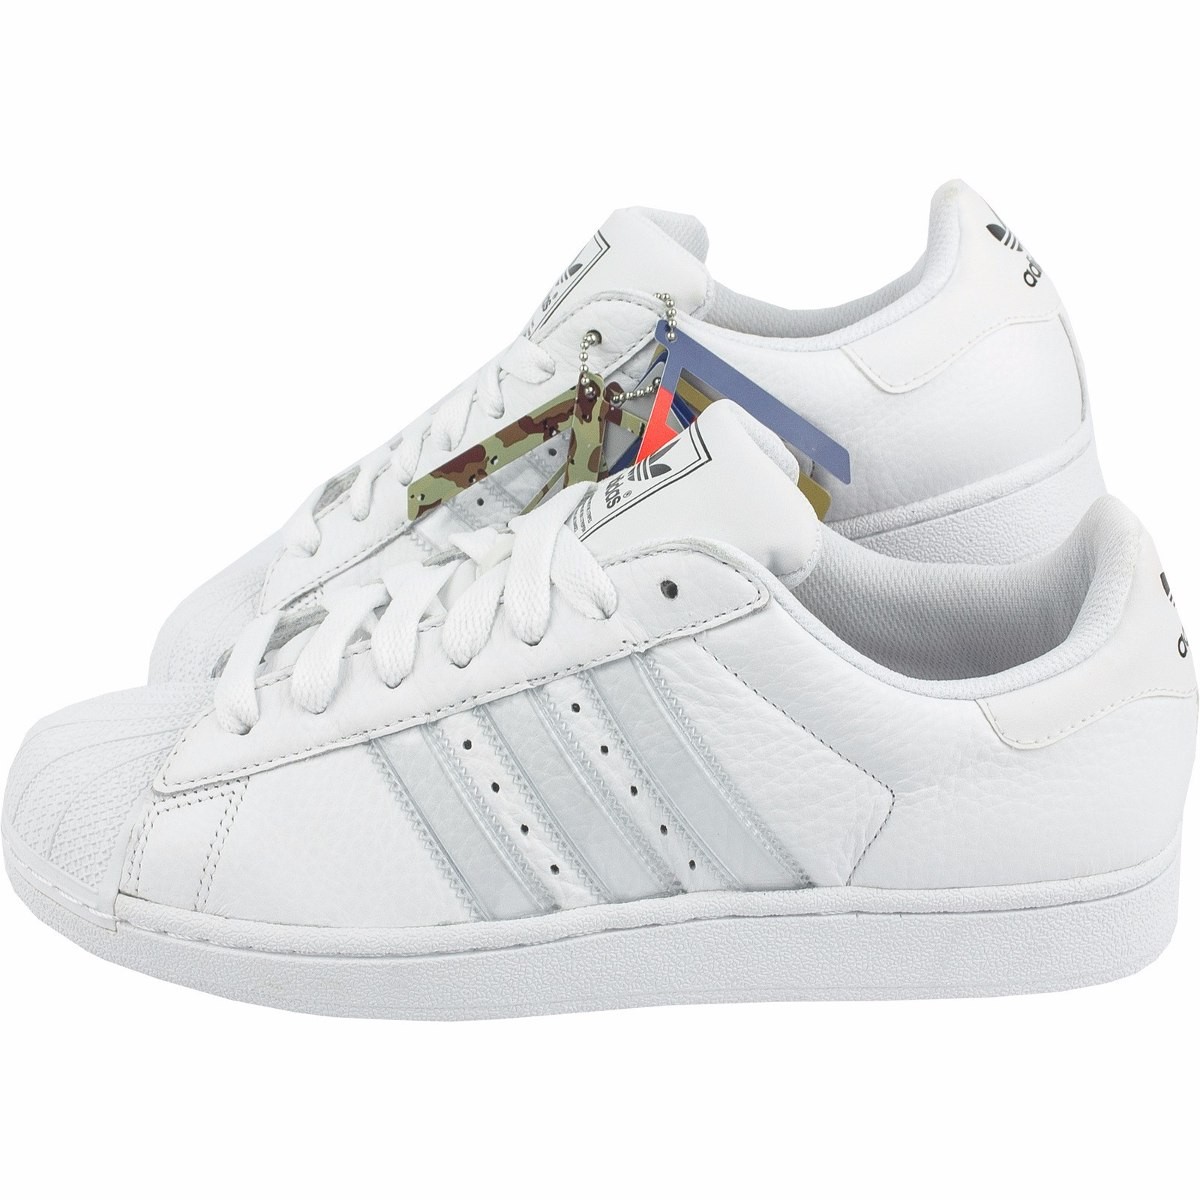 adidas superstar blancas 40